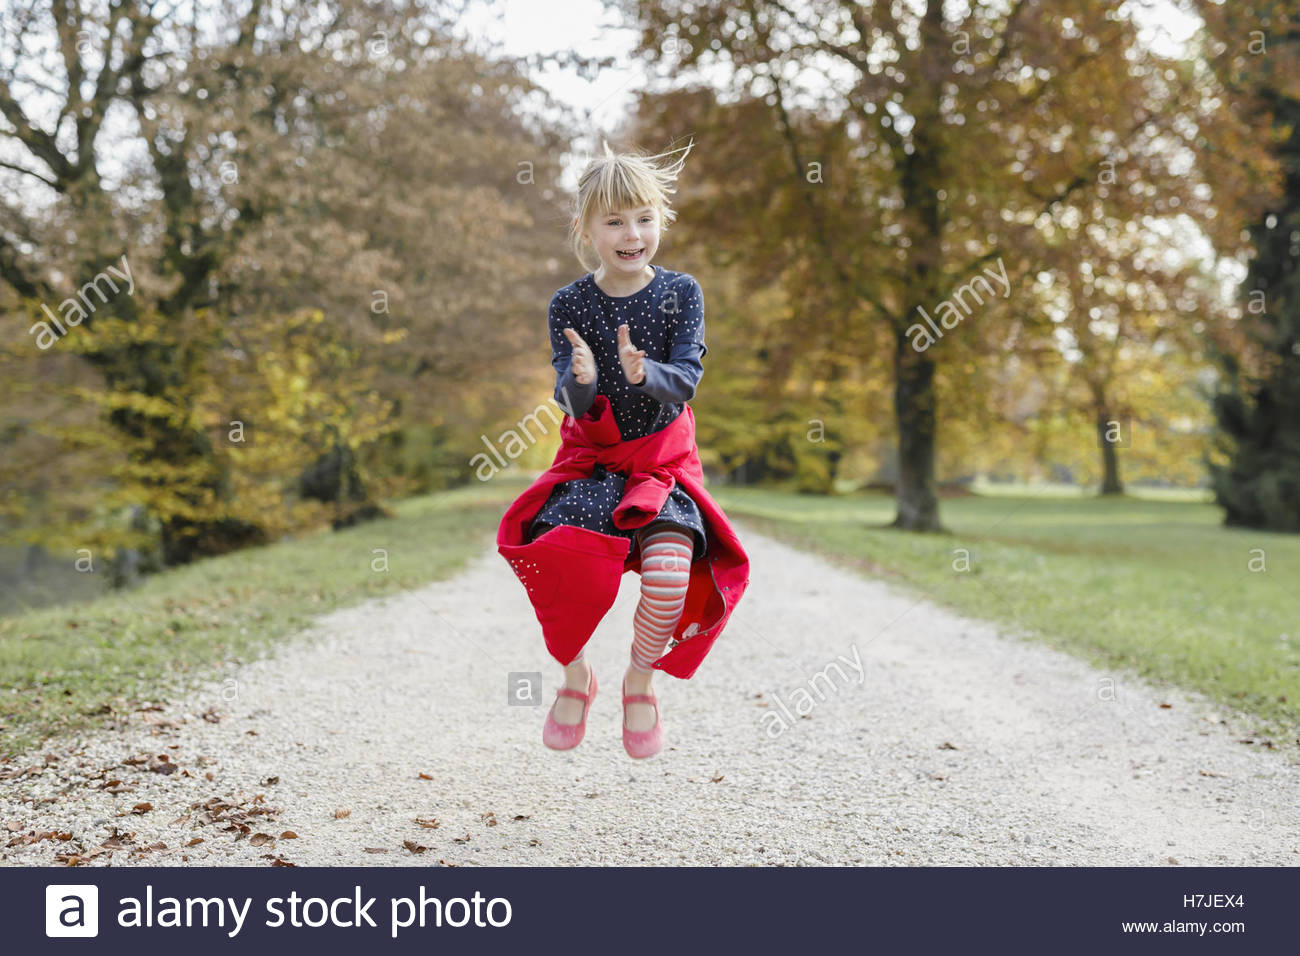 Happy autumn. Little girl in red coat jumping in autumn park. - Stock Image